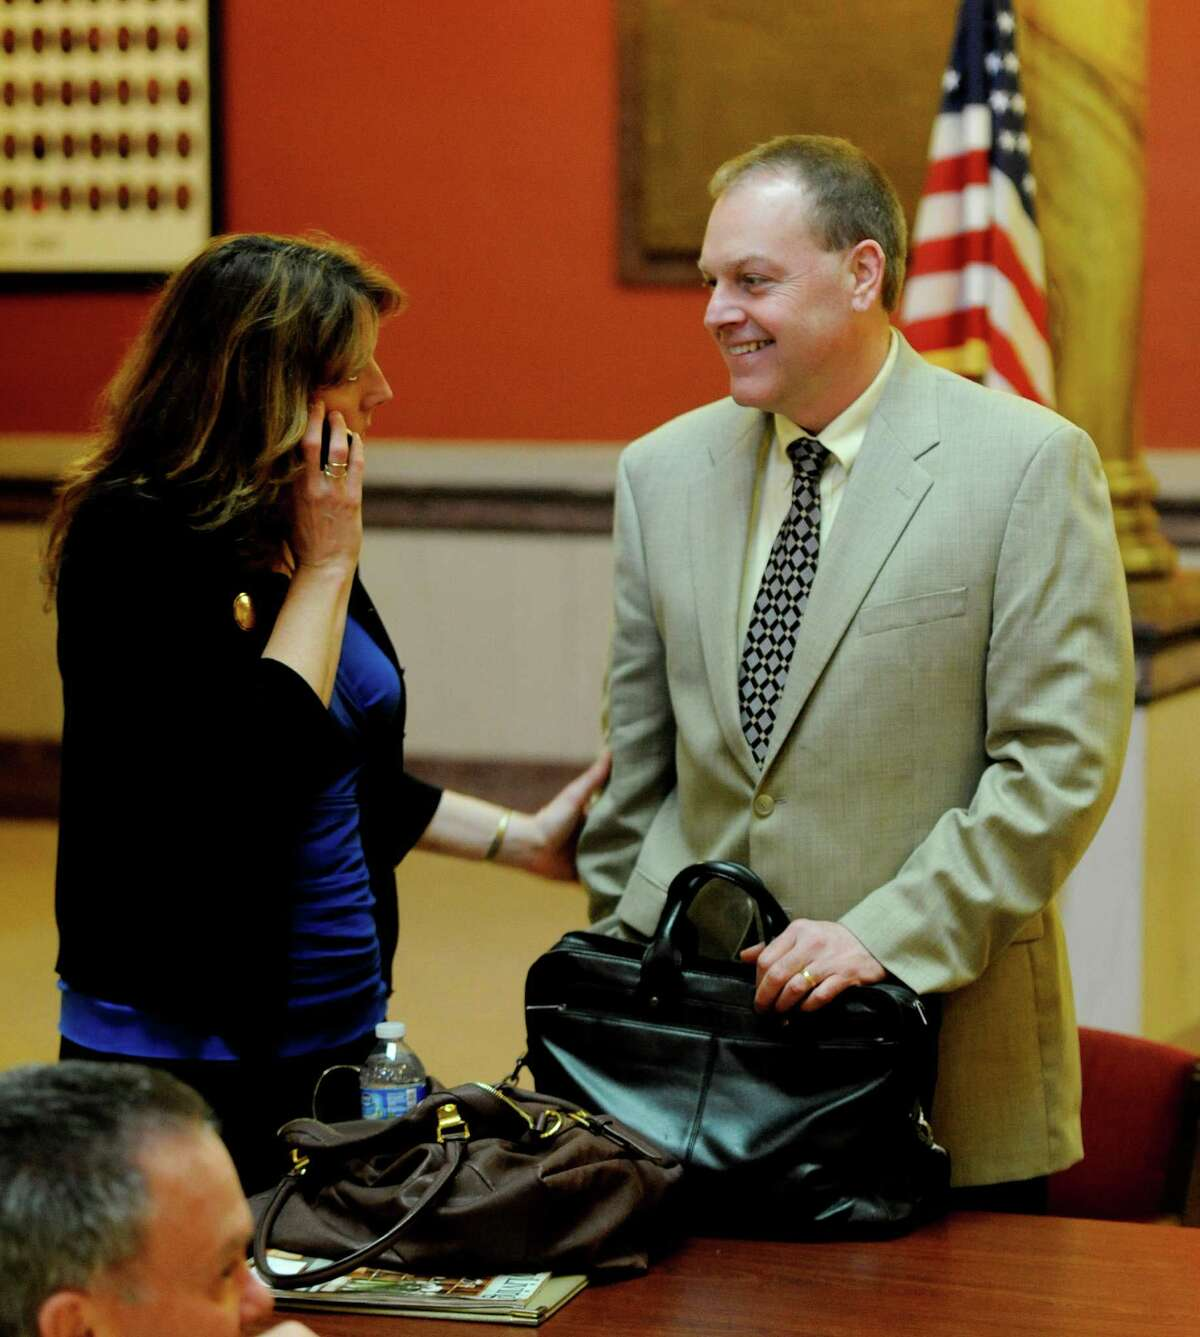 Edward McDonough is all smiles with wife Jackie after a hung jury caused Judge George Pulver to declare a mistrial in a ballot fraud case in which he was a defendant on March 13, 2012, in Troy, N.Y. (Skip Dickstein / Times Union archive)